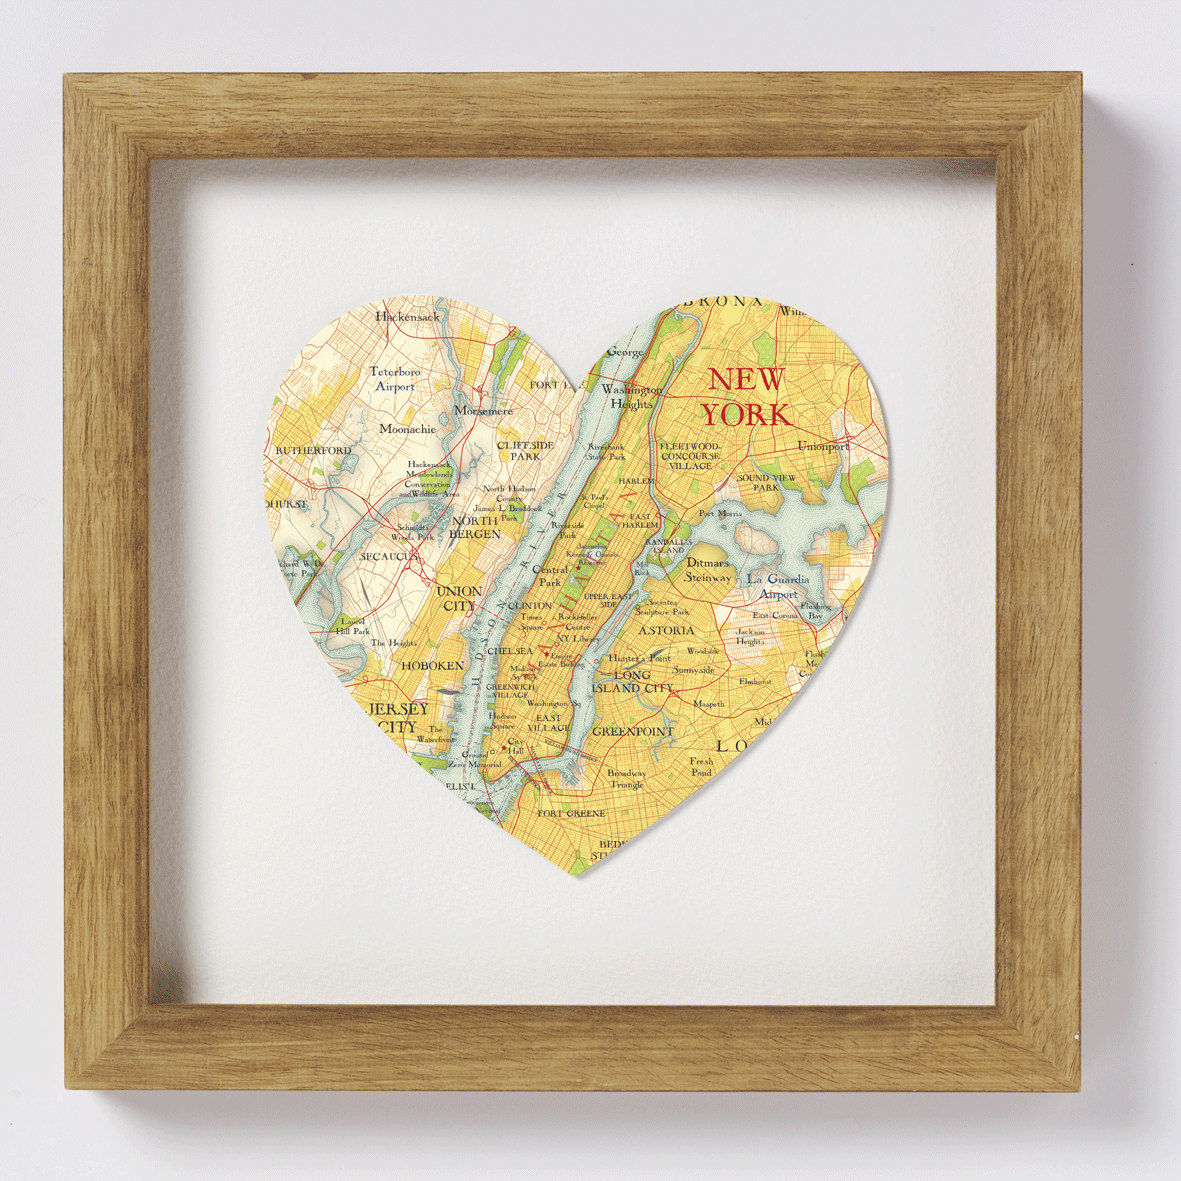 DIY heart map art thoughtful valentine's day gift ideas